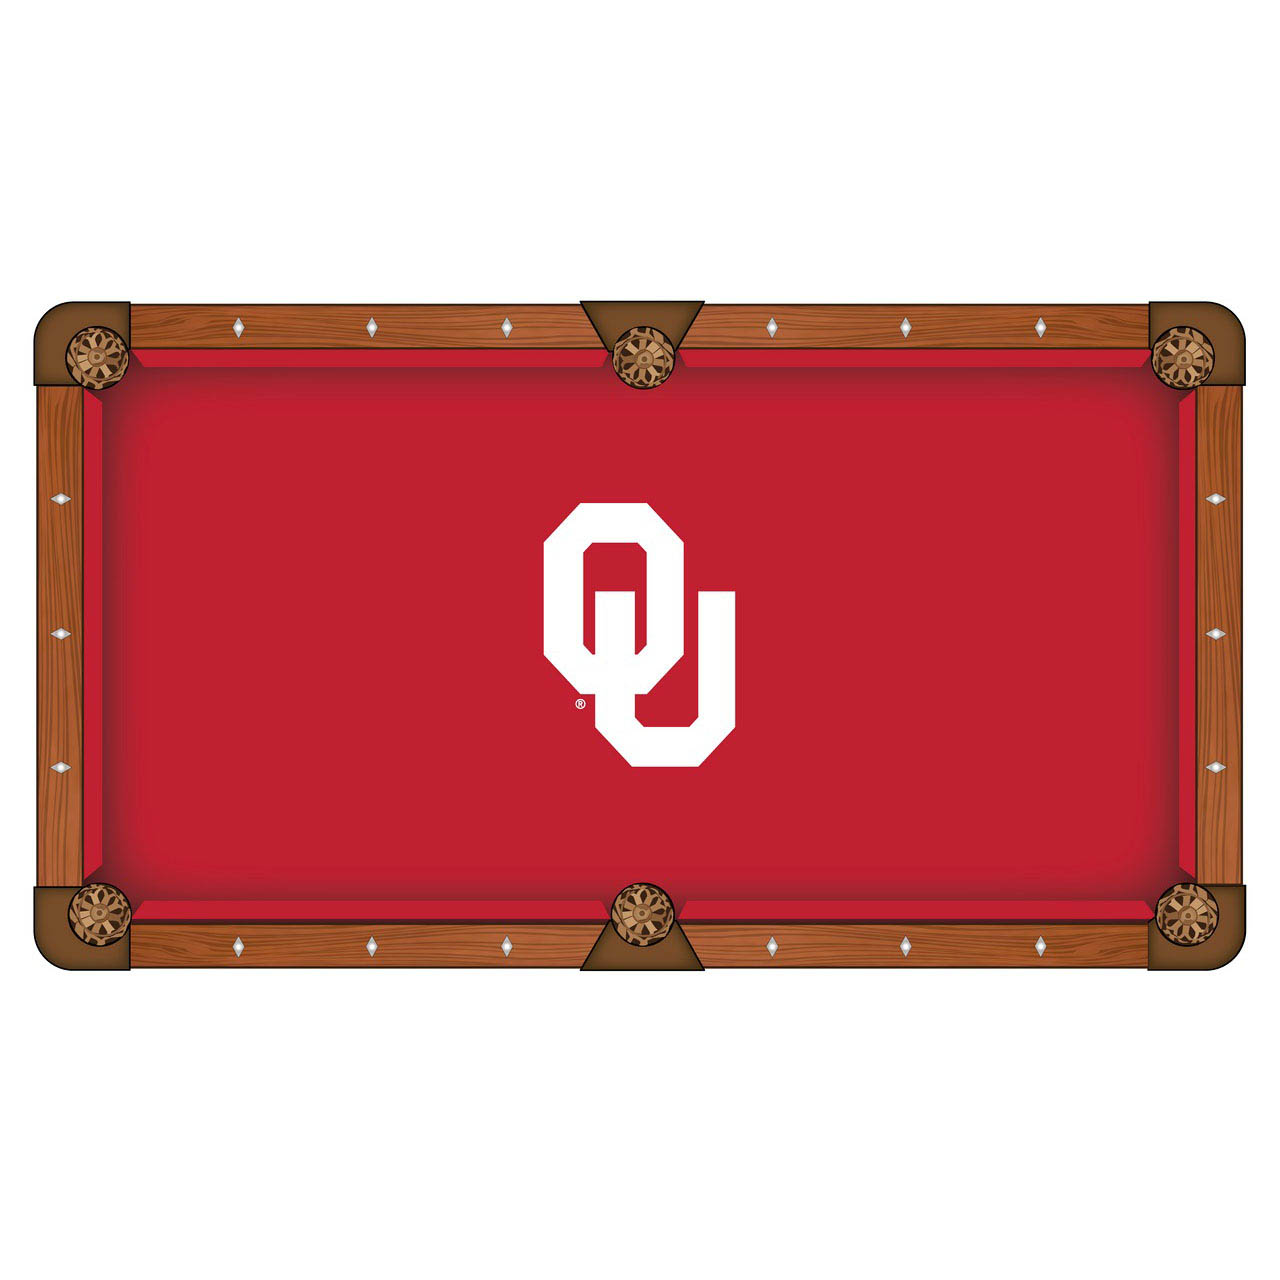 Outstanding Oklahoma University Pool Table Cloth Product Photo